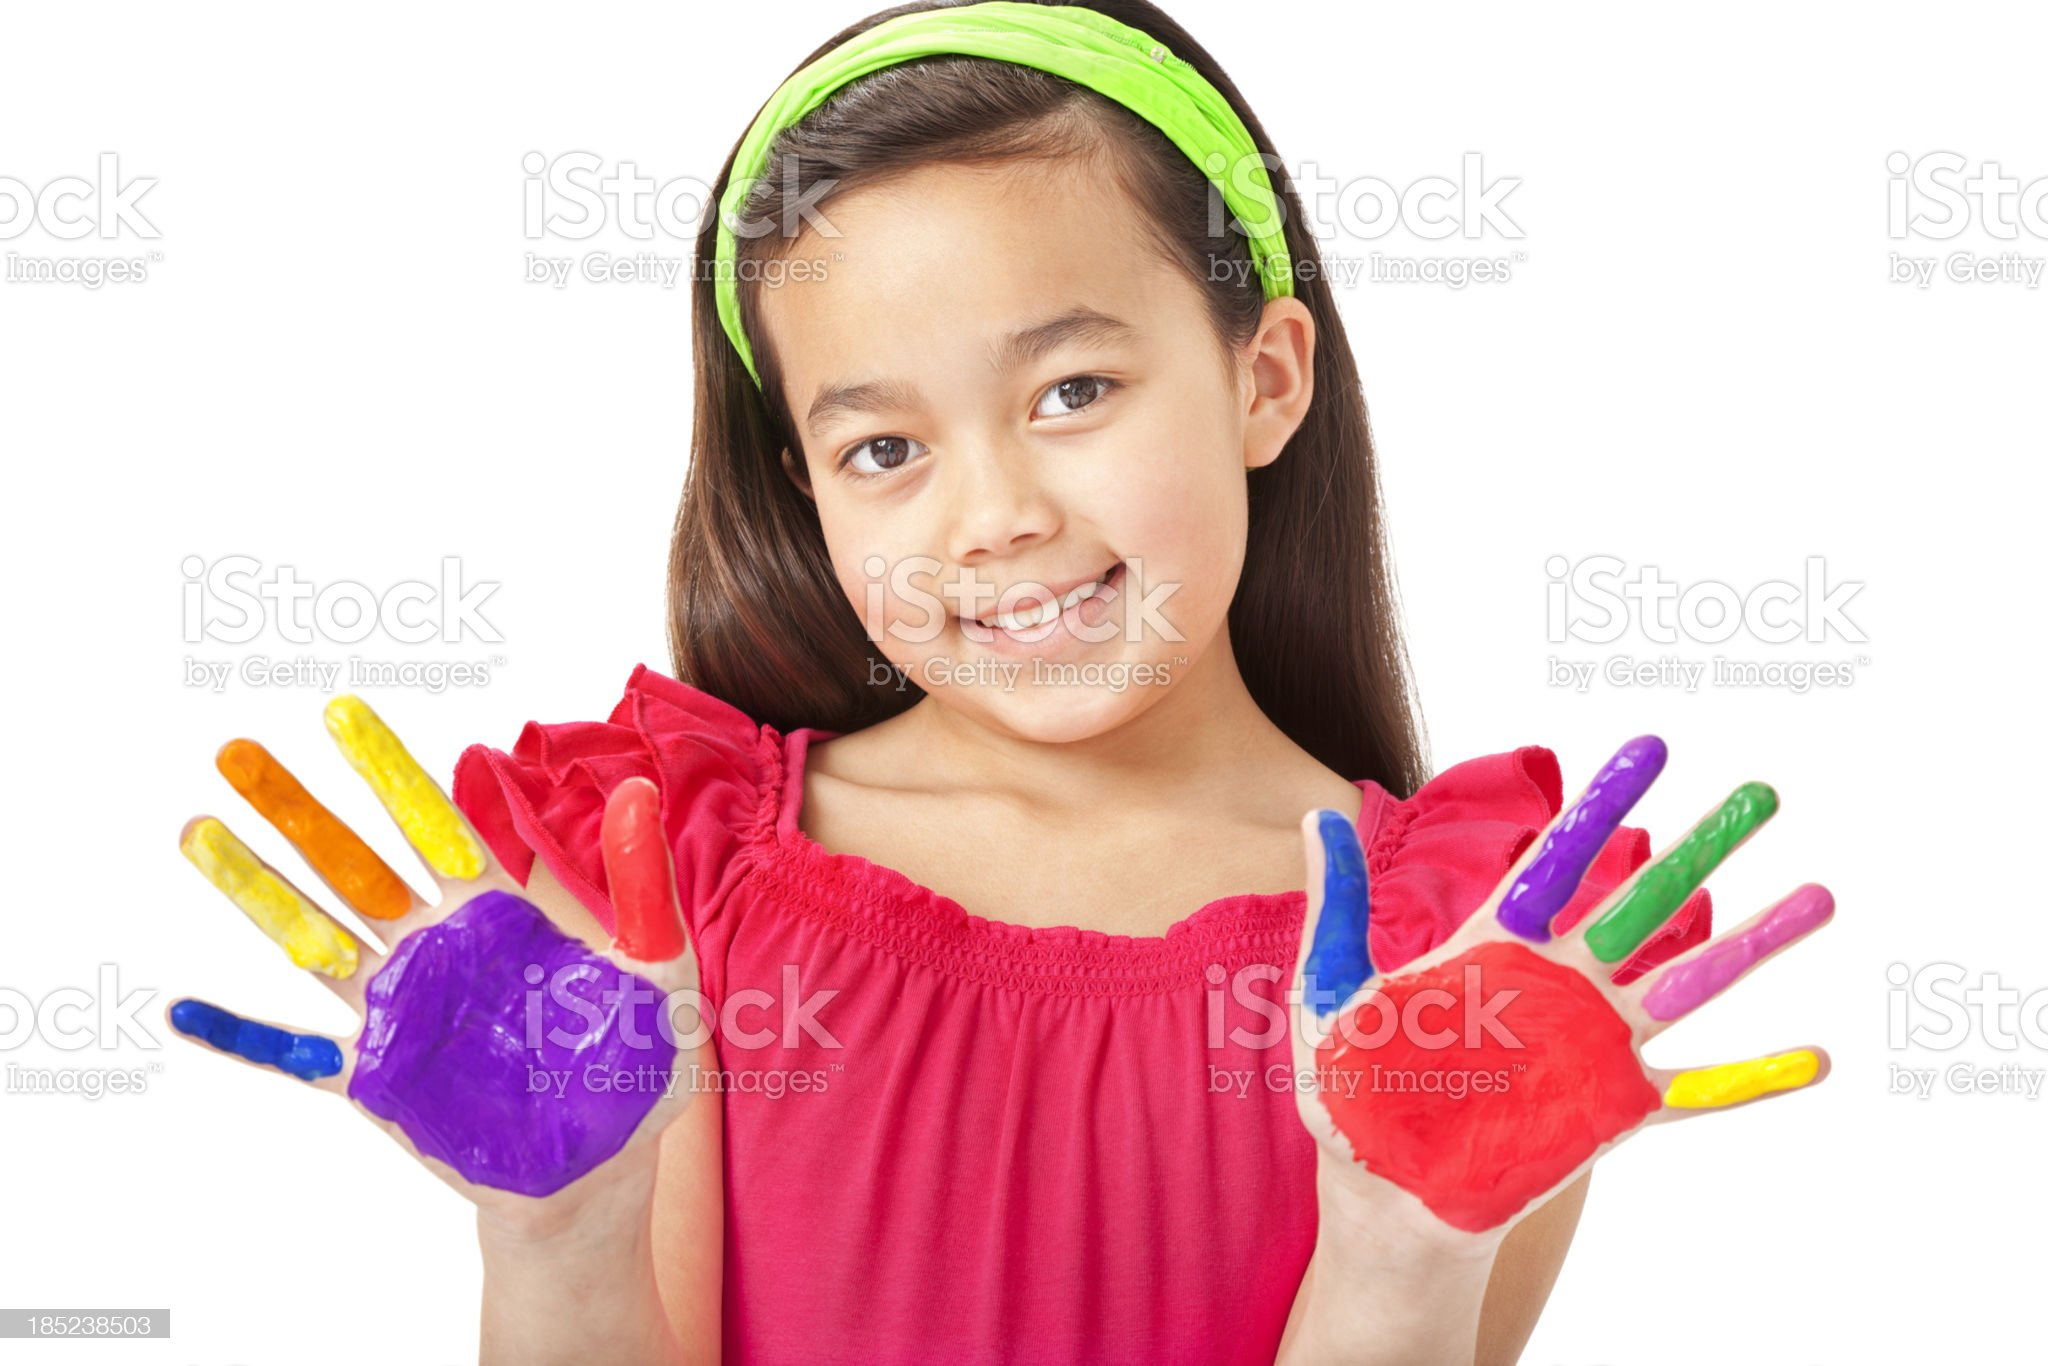 Happy Little Girl With Painted Hands royalty-free stock photo